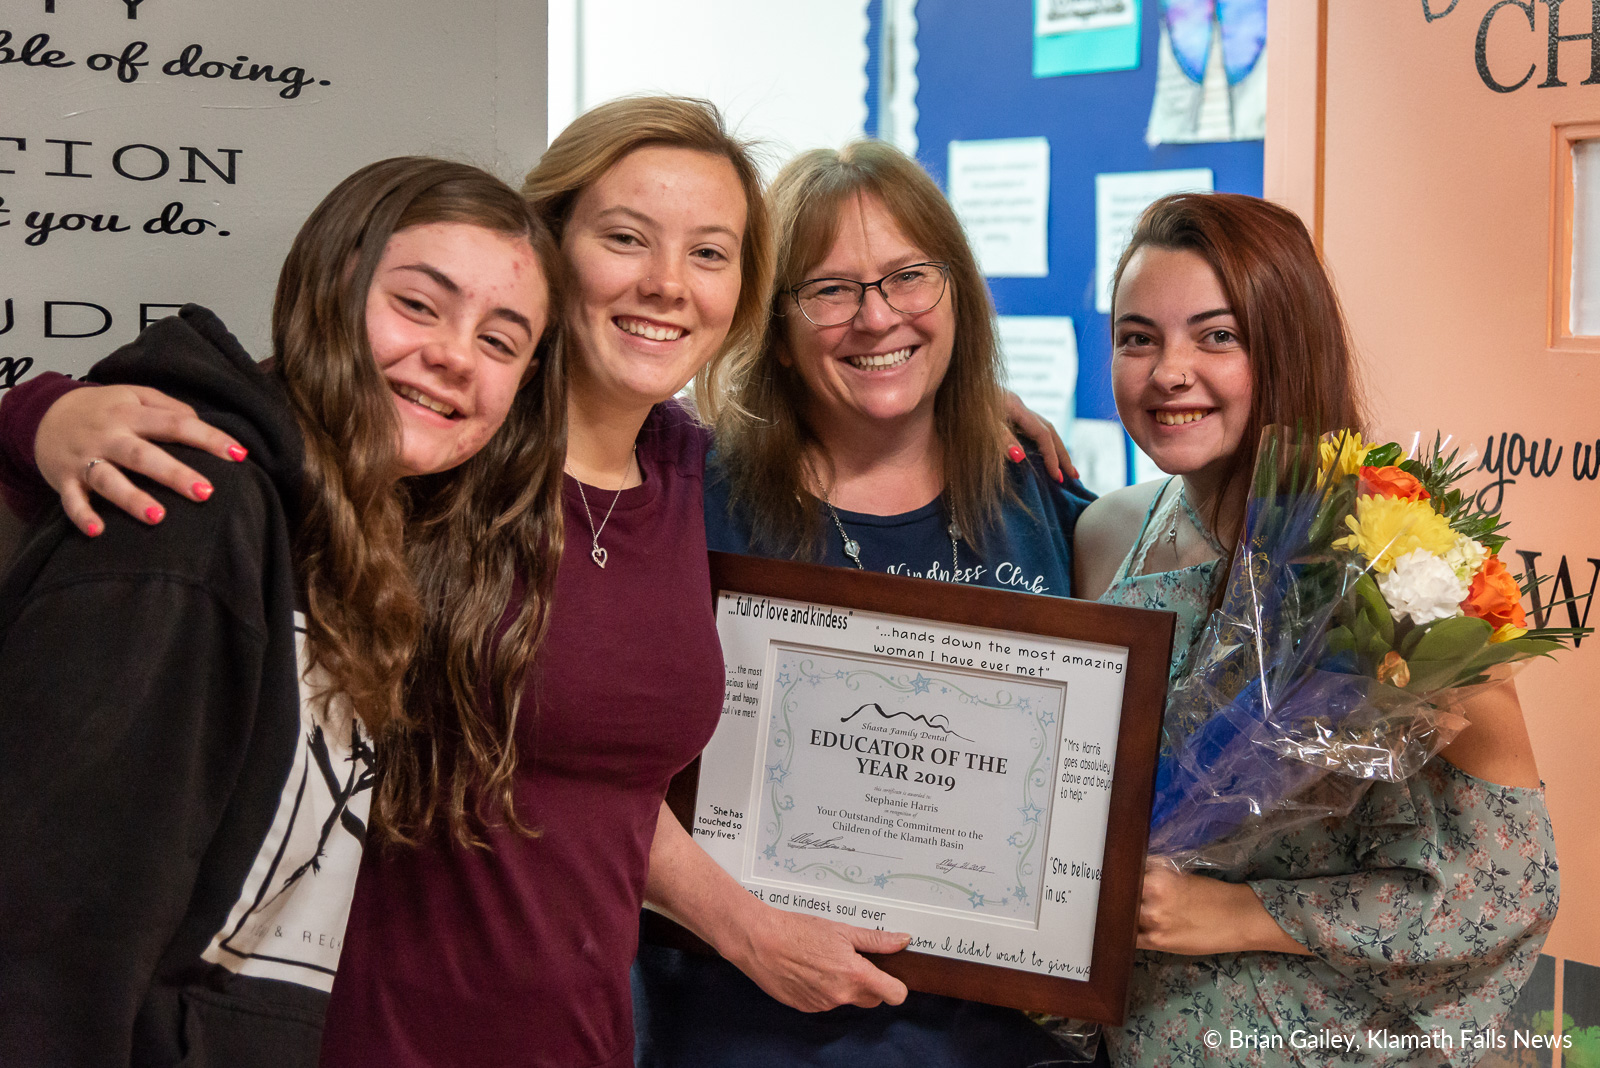 Stephanie Harris stands with a few of here students after being awarded Educator of the Year. Left to right: Brianna Drake, Hailey Nelson, Stephanie Harris, Kara LaMere. May 24, 2019 (Image, Brian Gailey / Klamath Falls News)